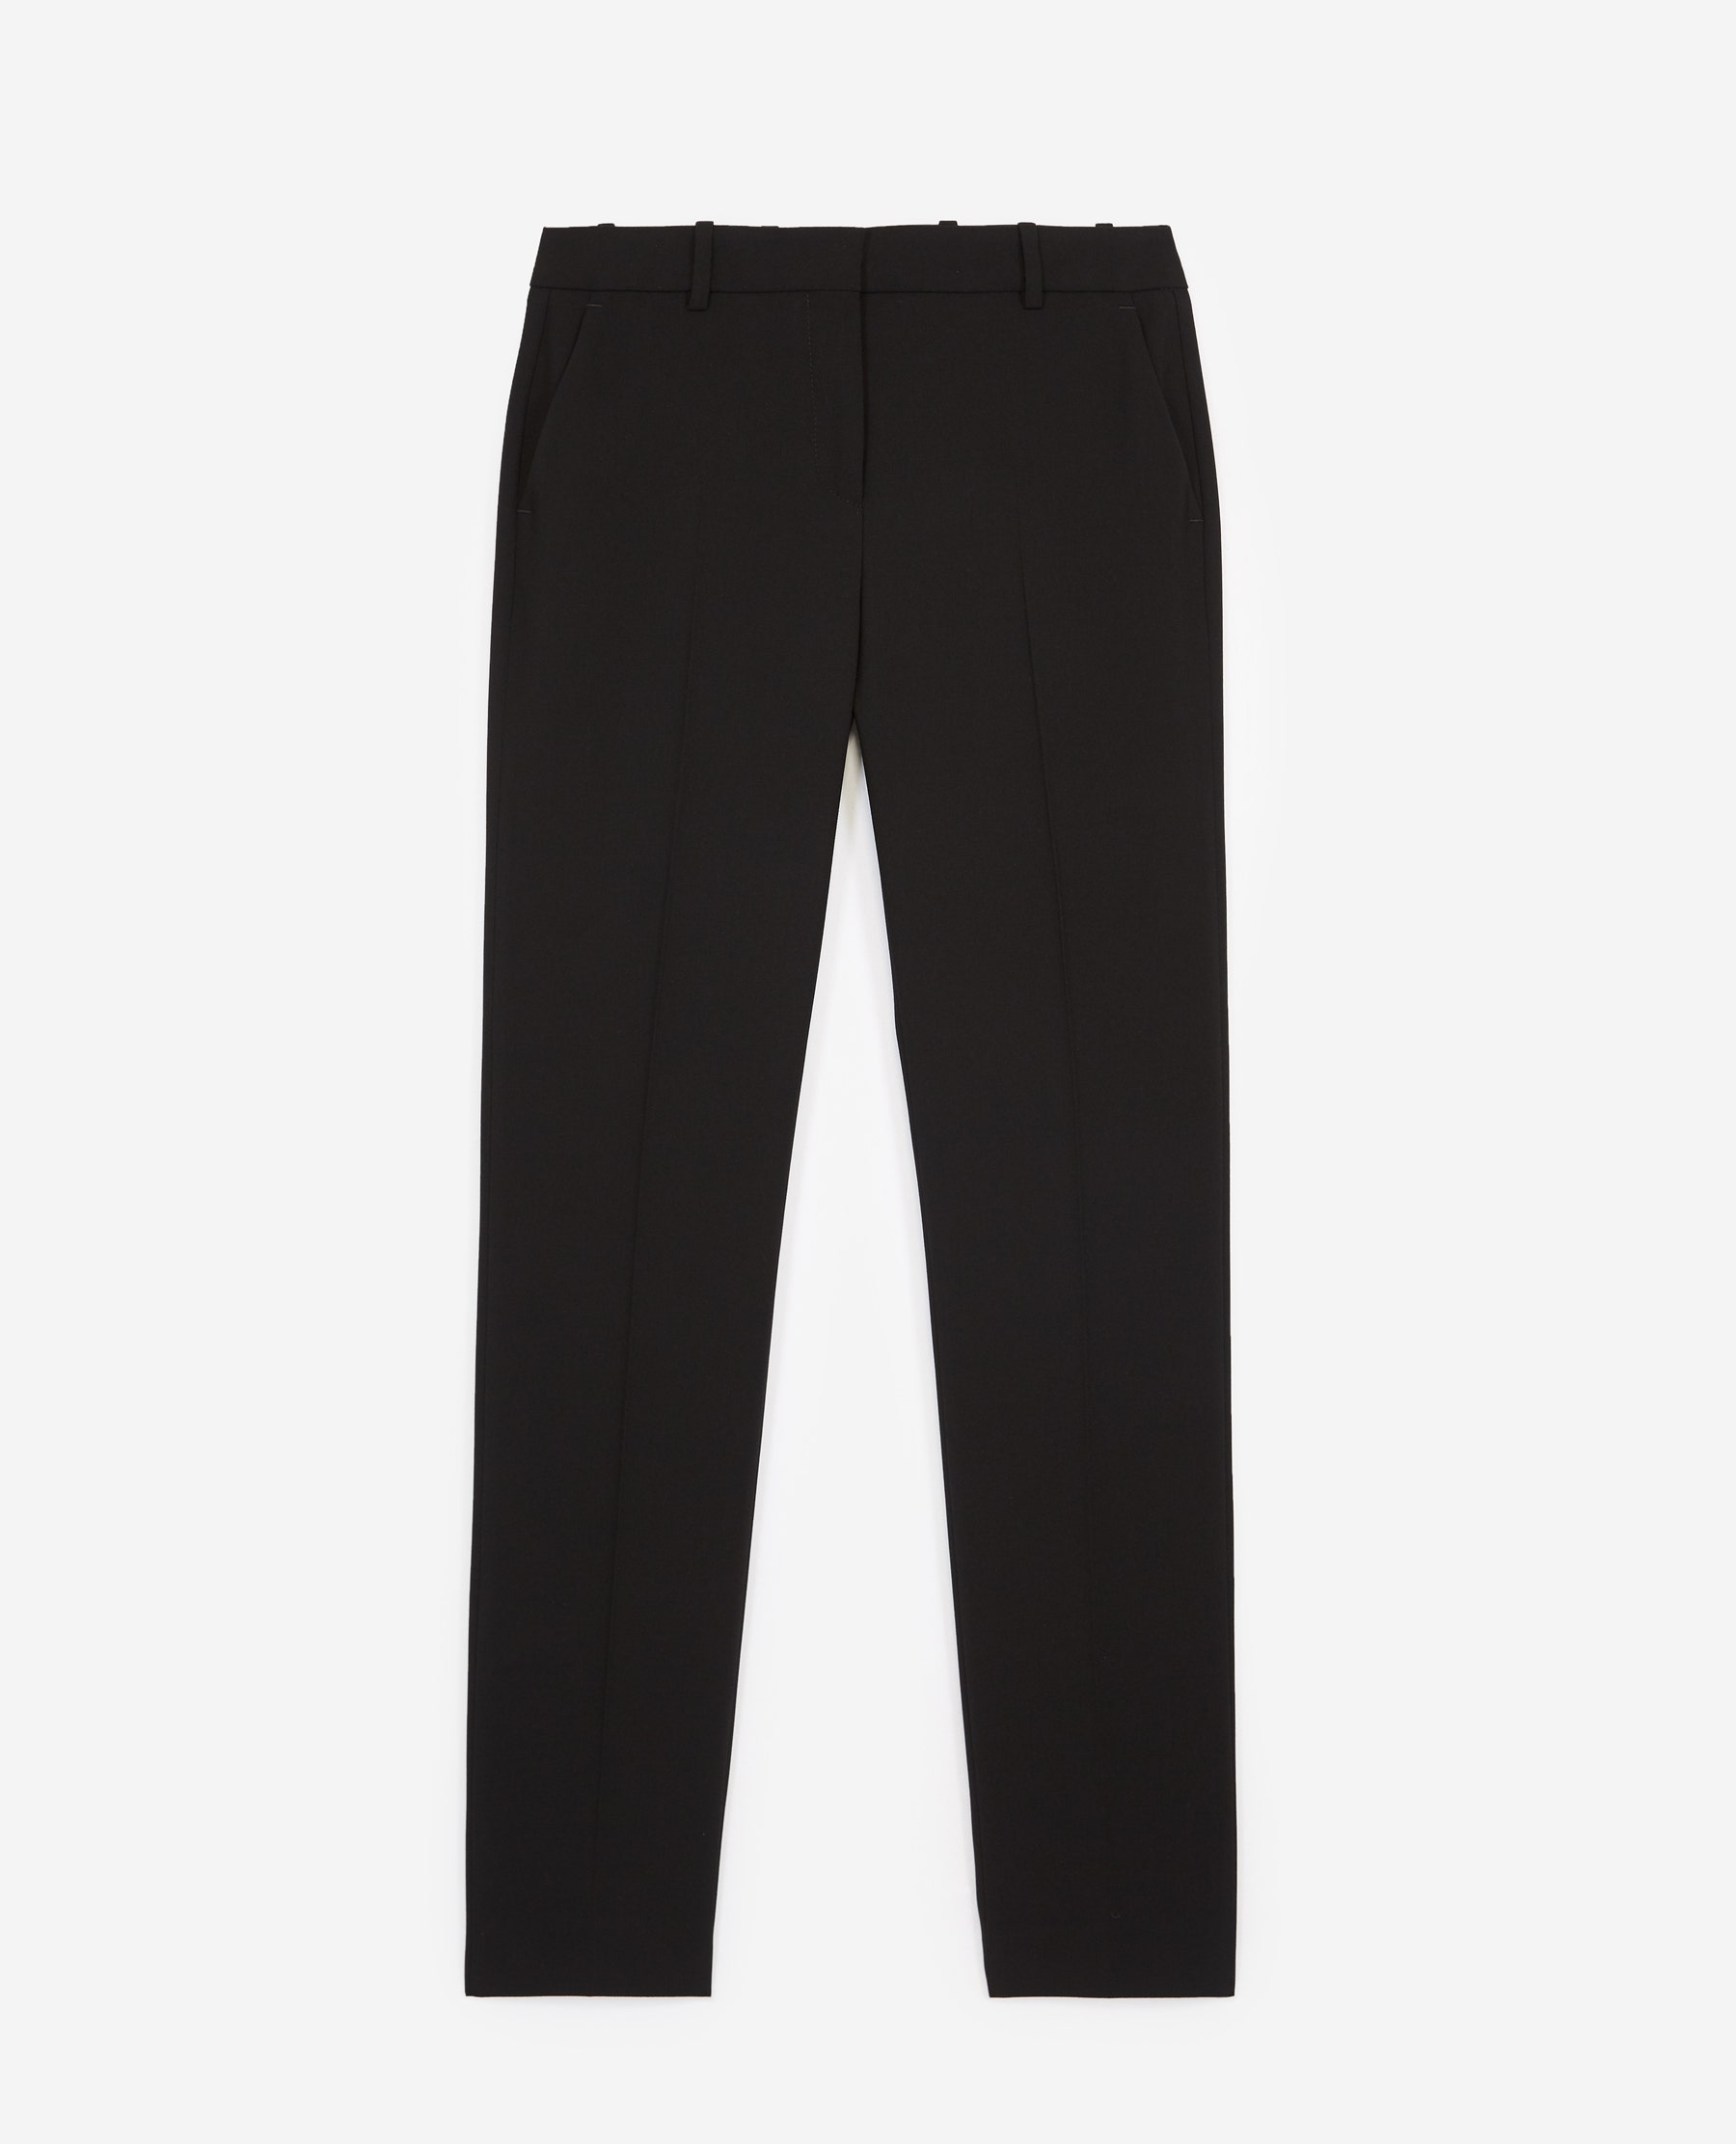 Pantalon costume noir crêpe - The Kooples - Modalova